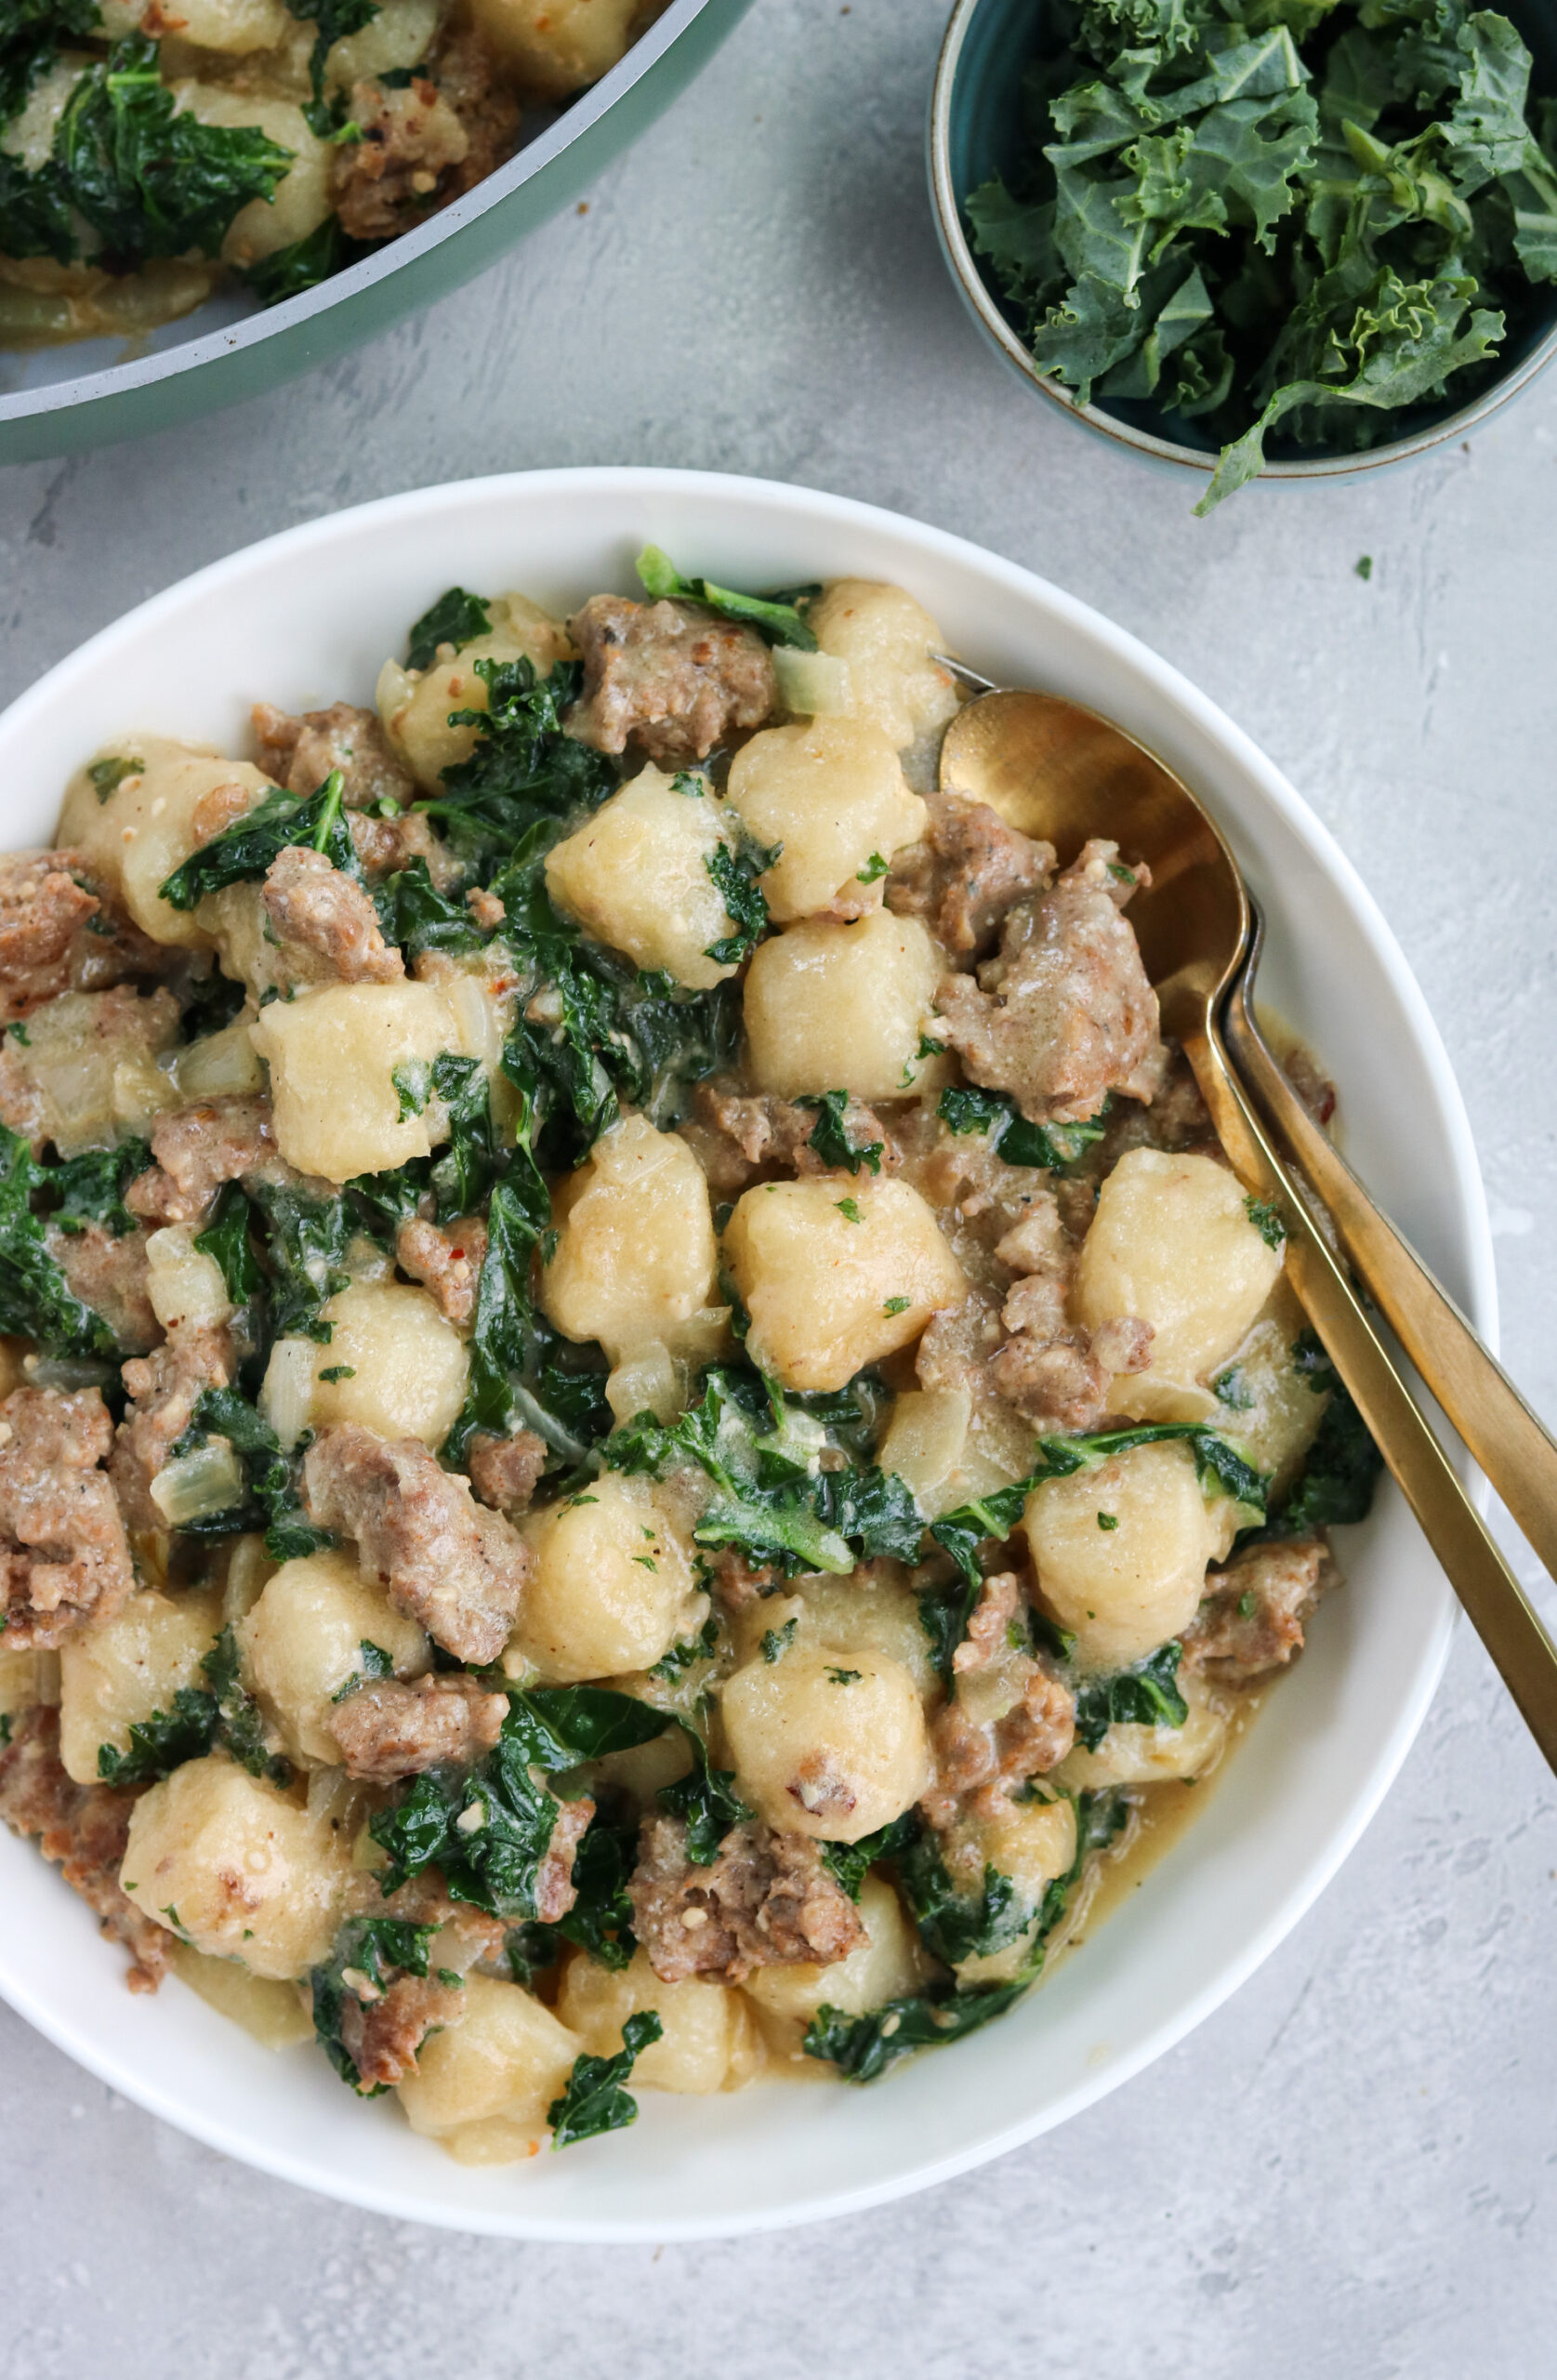 a bowl of spinach kale gnocchi next to a bowl of kale and a skillet of spinach kale gnocchi with a white background